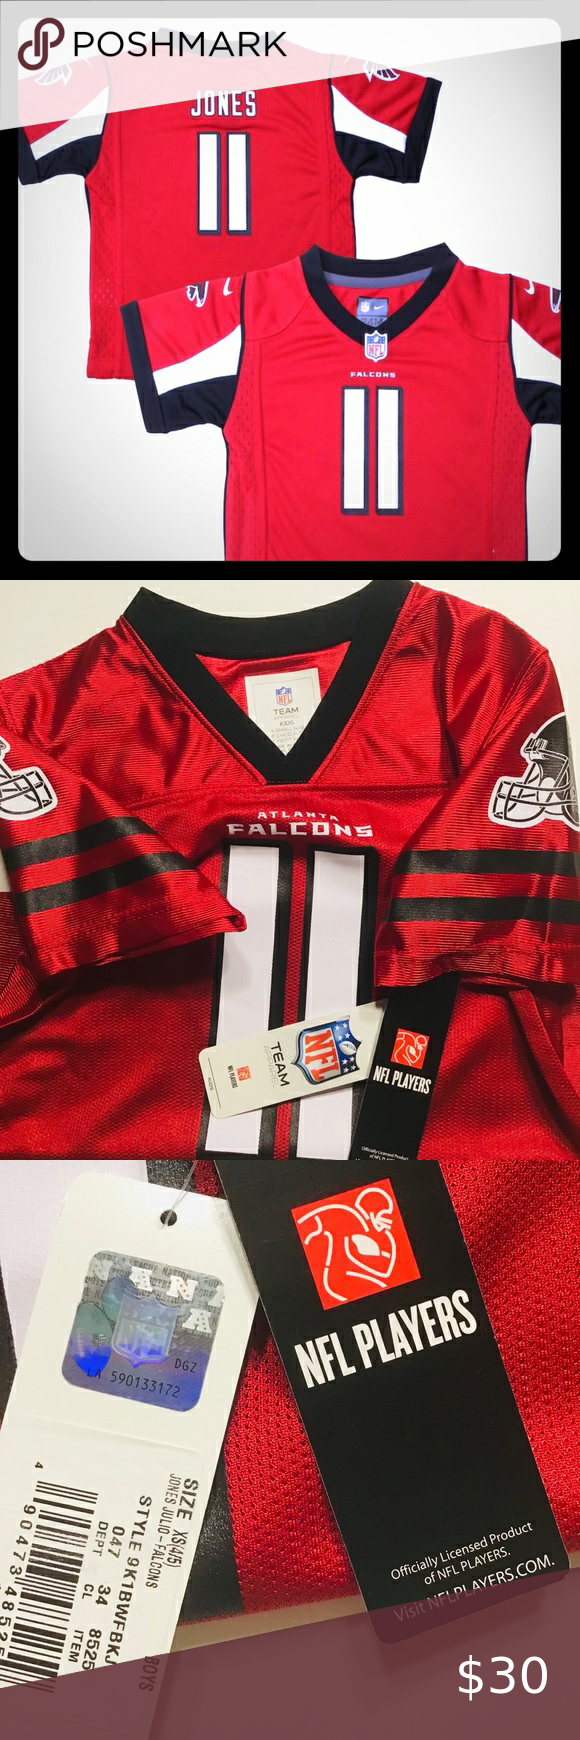 Bnwt Nfl Team Apparel Atlanta Falcons Jersey In 2020 Team Apparel Nfl Team Apparel Nfl Shirts